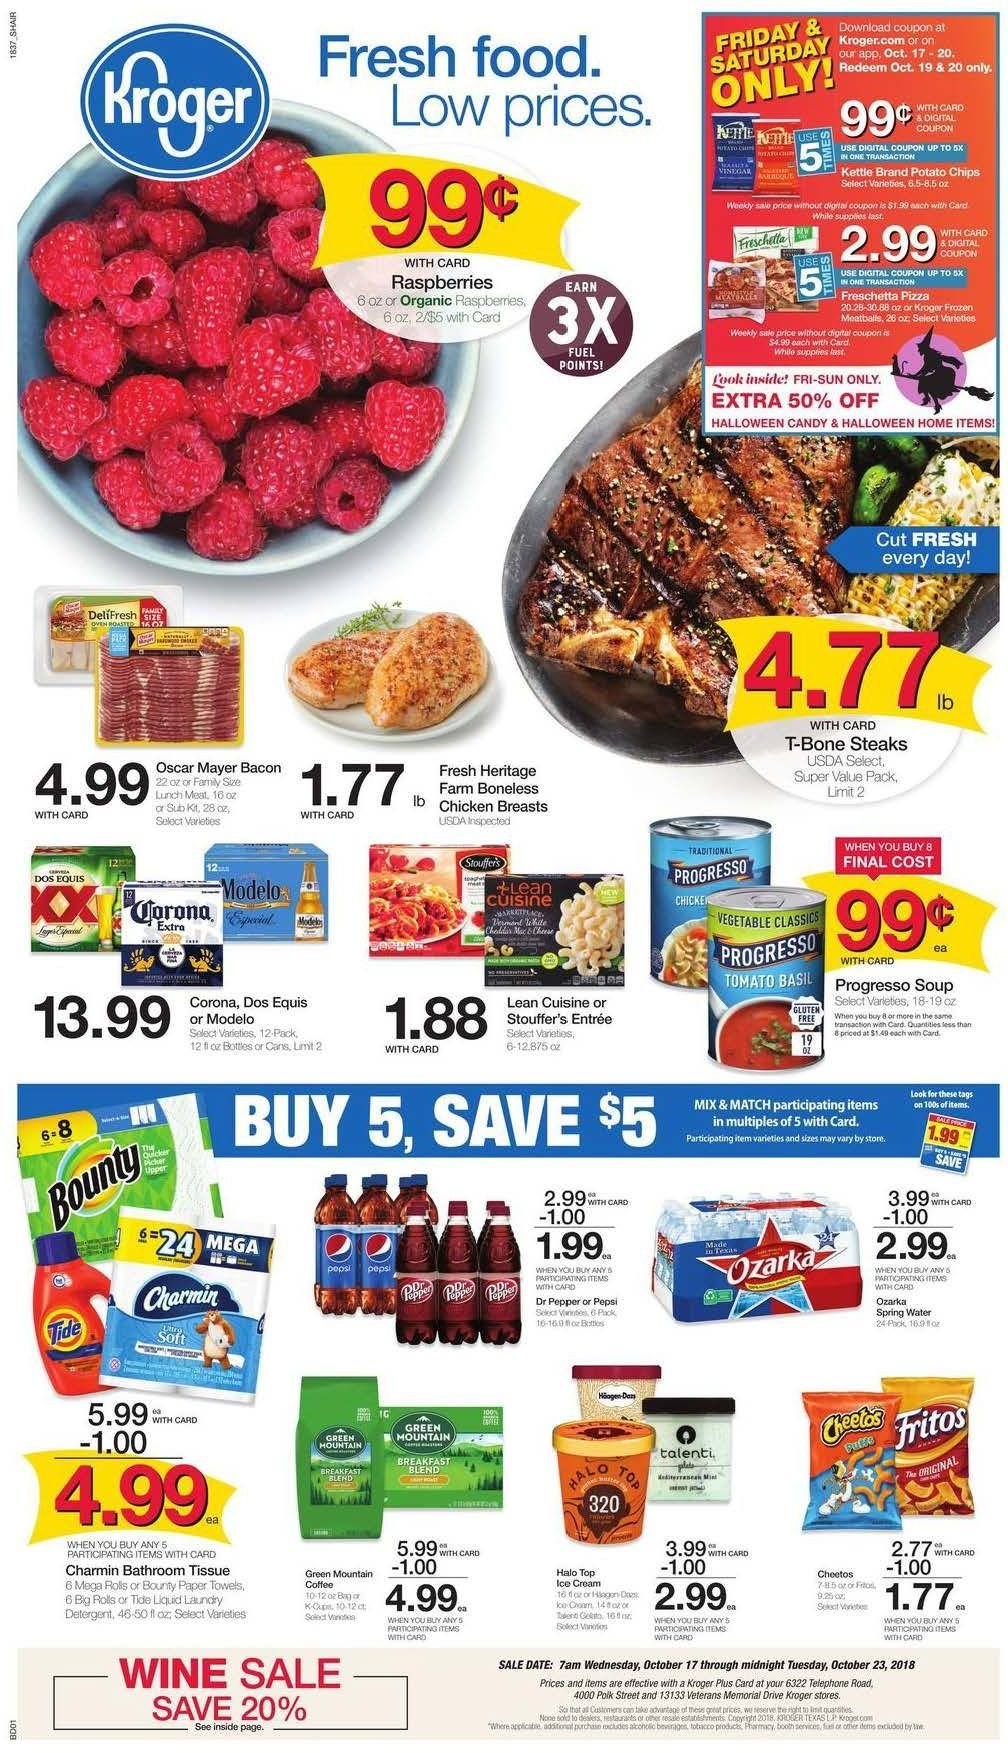 Kroger Flyer - 10.17.2018 - 10.23.2018 - Sales products - bacon, bathroom, detergent, frozen, fuel, raspberries, t-bone steak, towel, ice cream, polk, potato chips, chicken, chicken breast, paper towel, organic, chips, meatballs. Page 1.